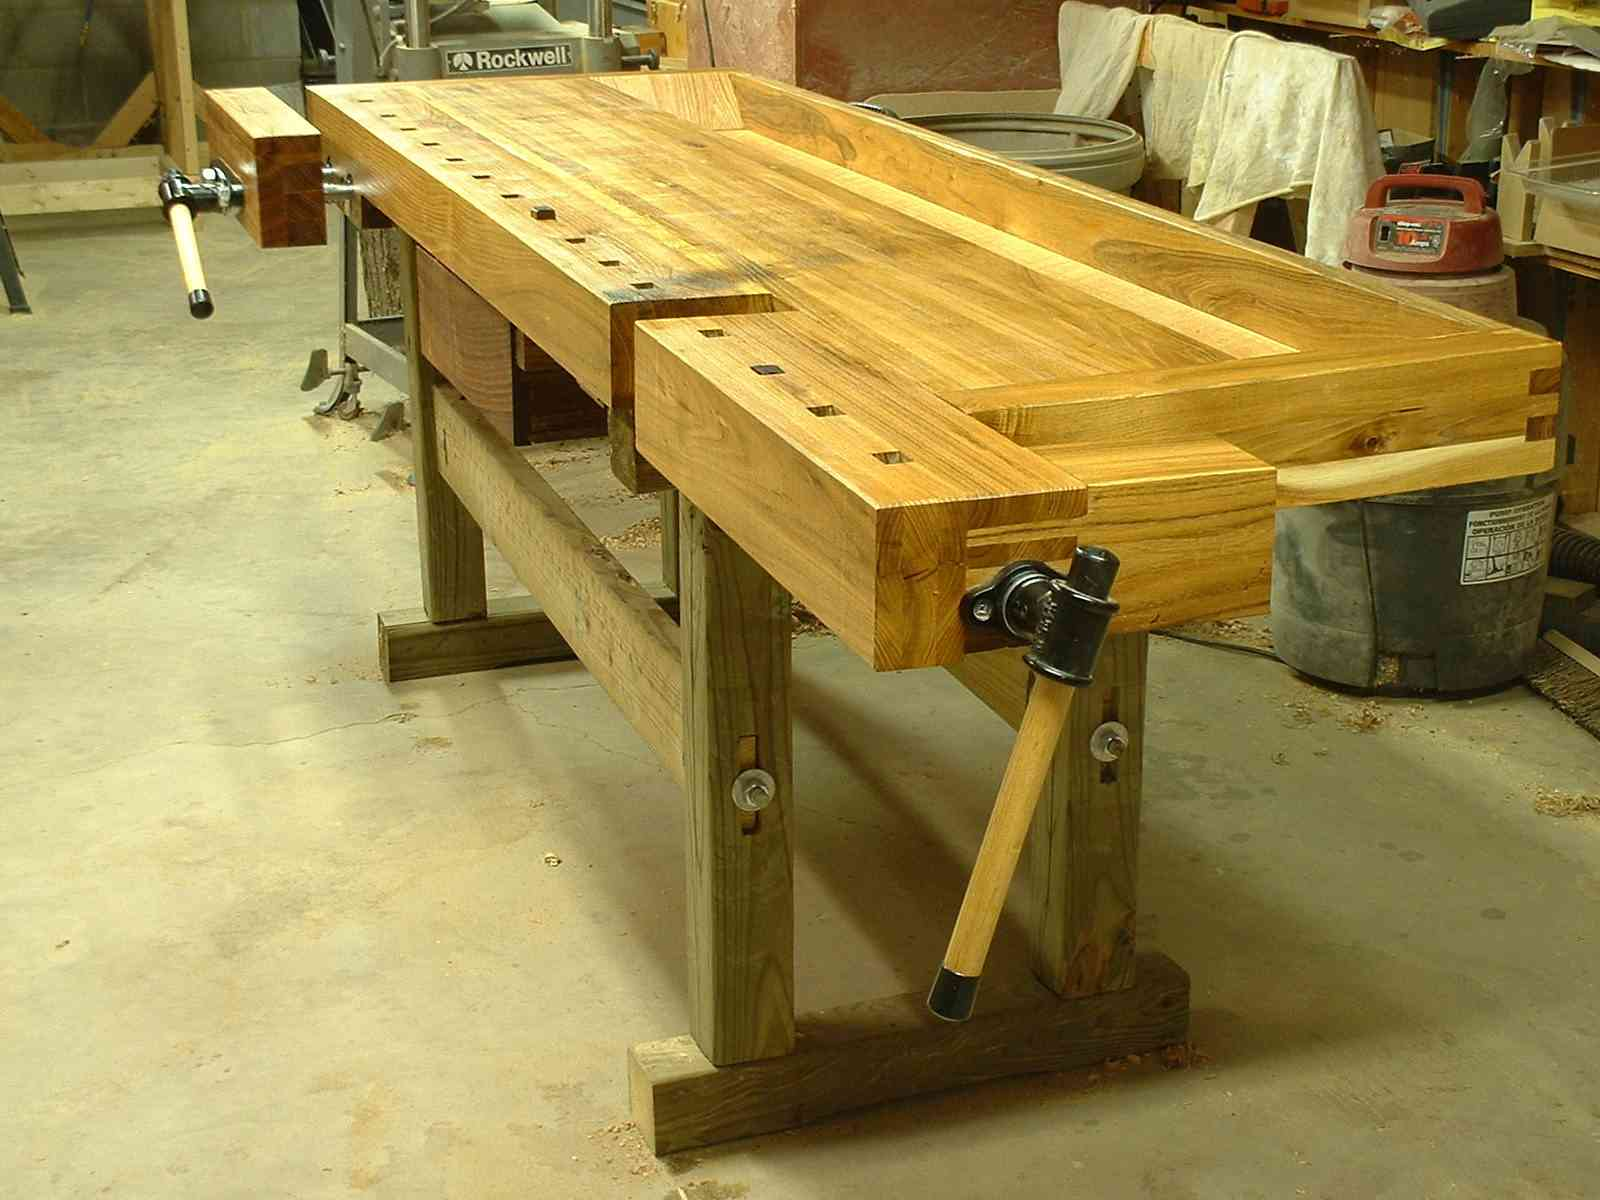 Wood project ideas guide to get plans for storage bench for Woodworking guide